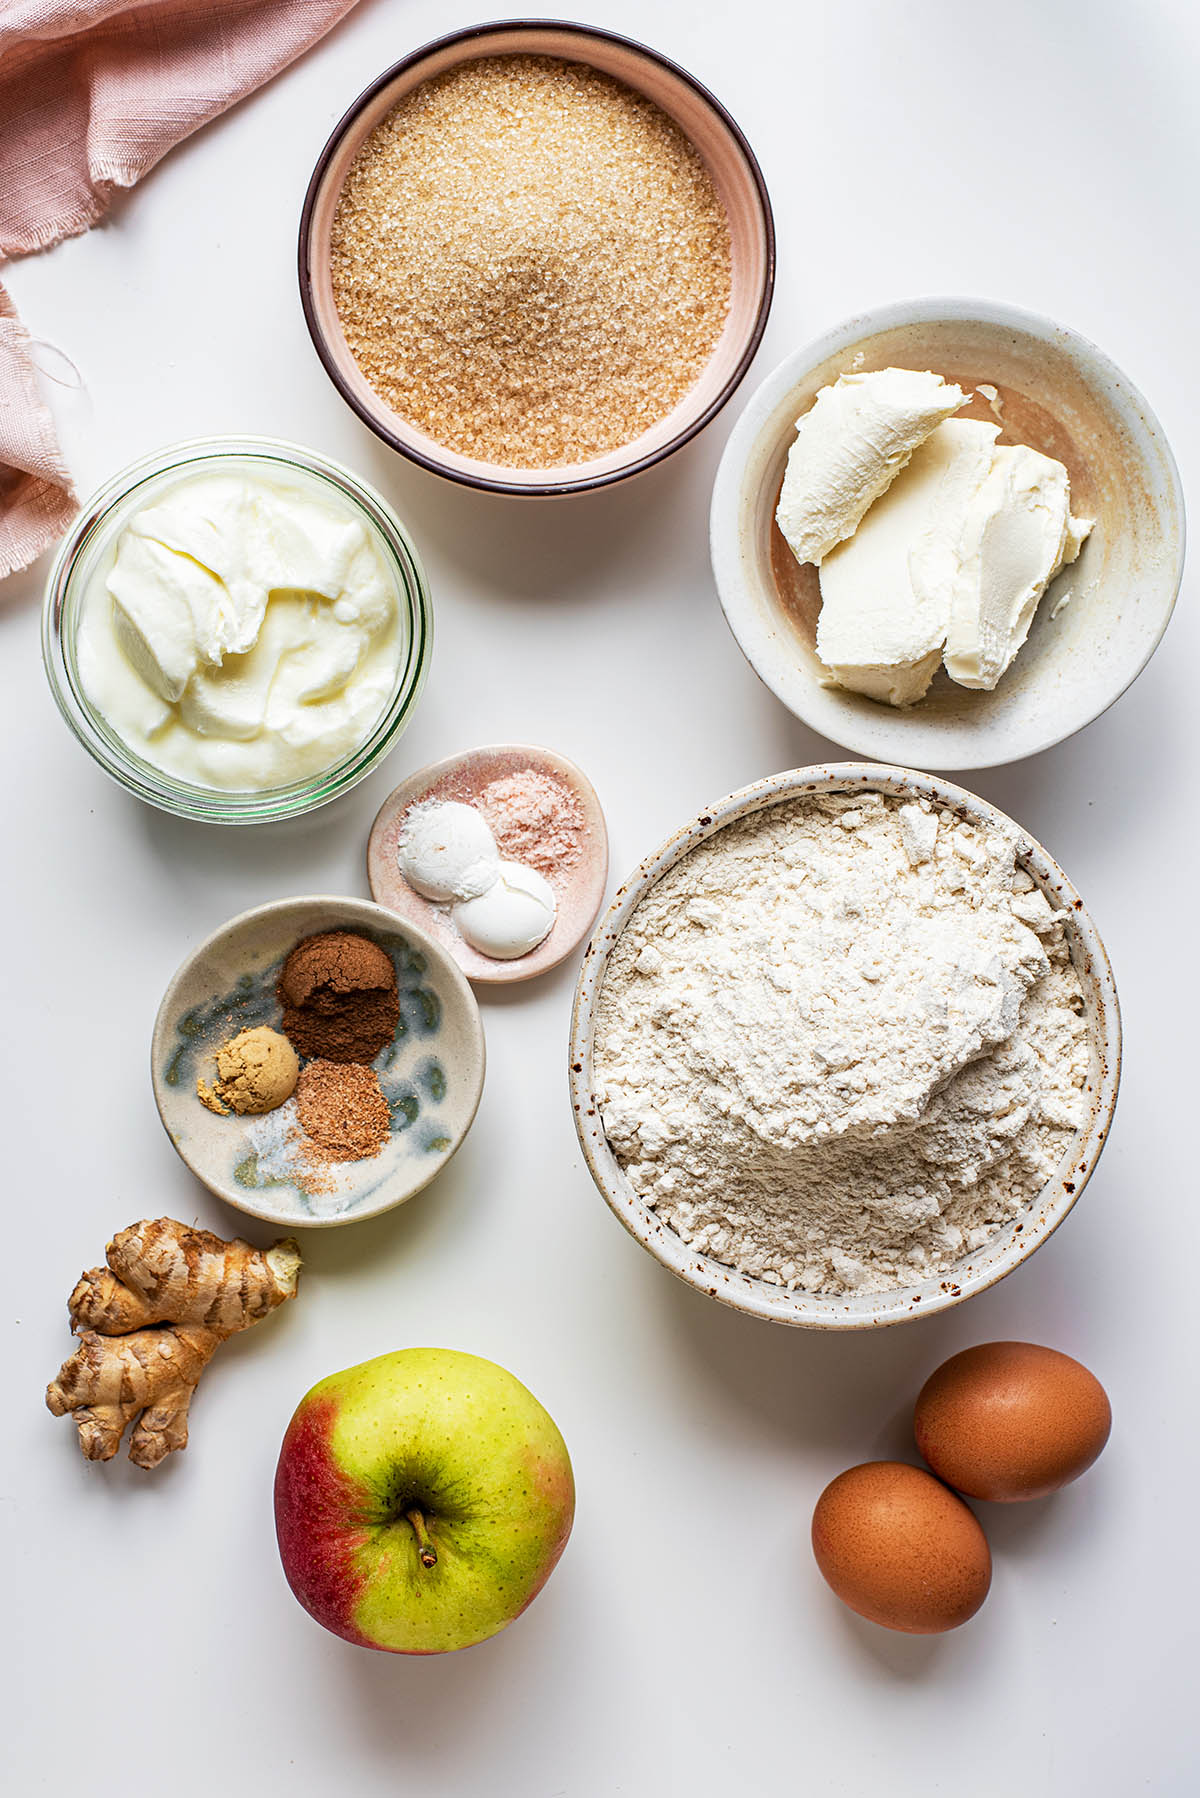 Apple cake ingredients.